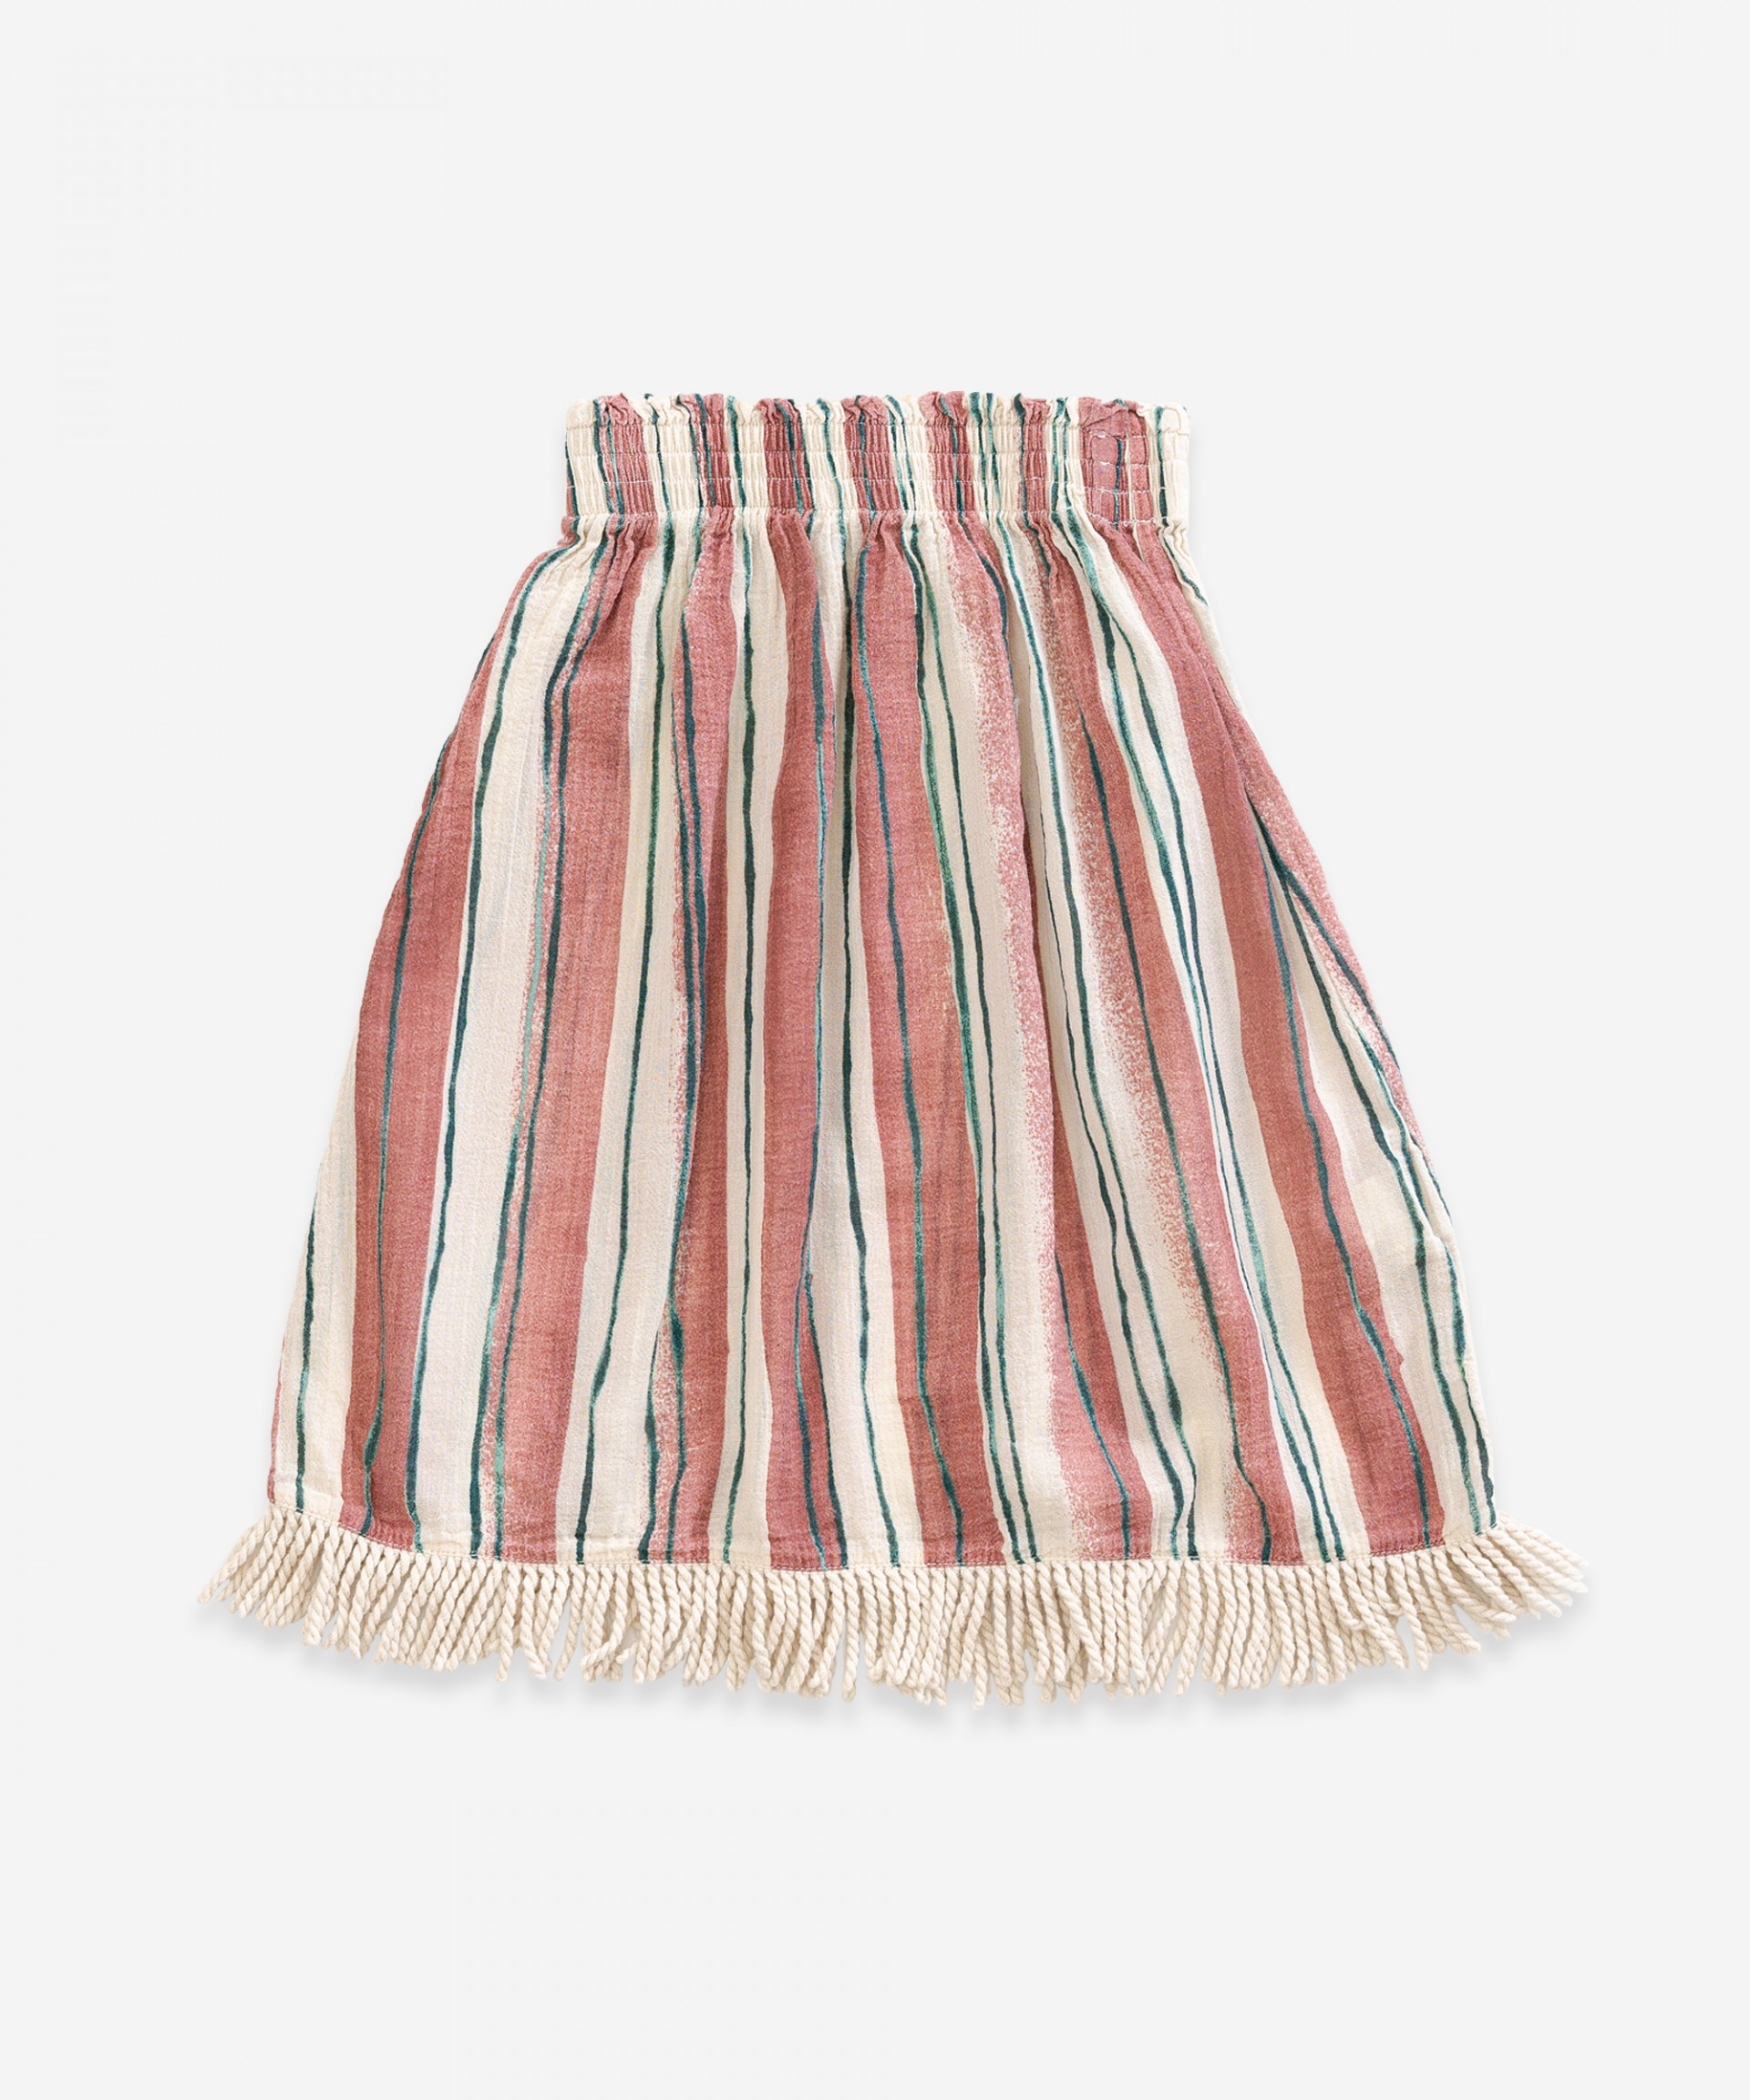 Skirt in cotton | Weaving